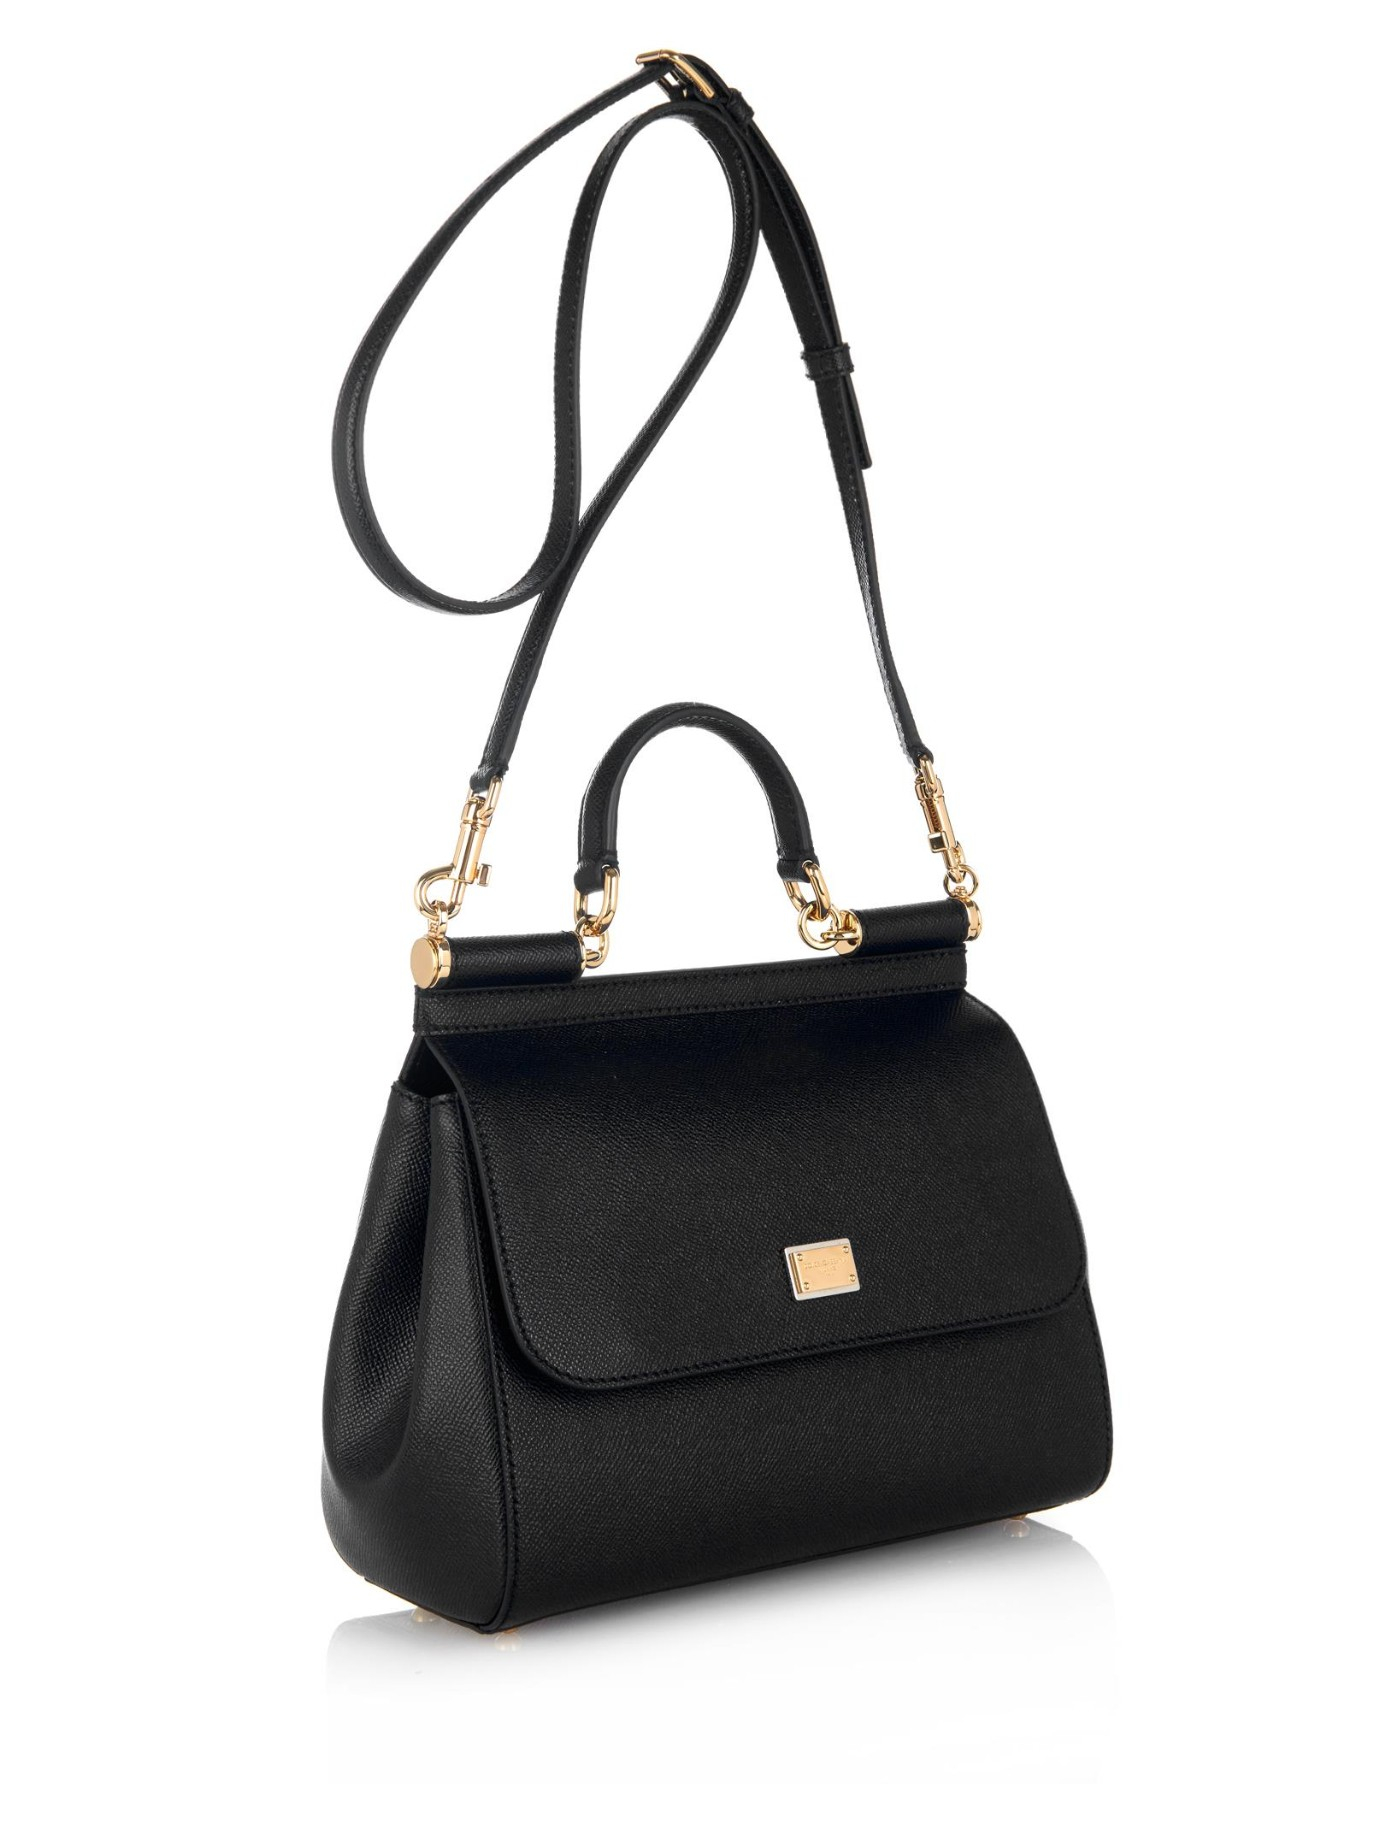 39433fd07e Lyst - Dolce   Gabbana Sicily Dauphine Medium Cross-Body Bag in Black